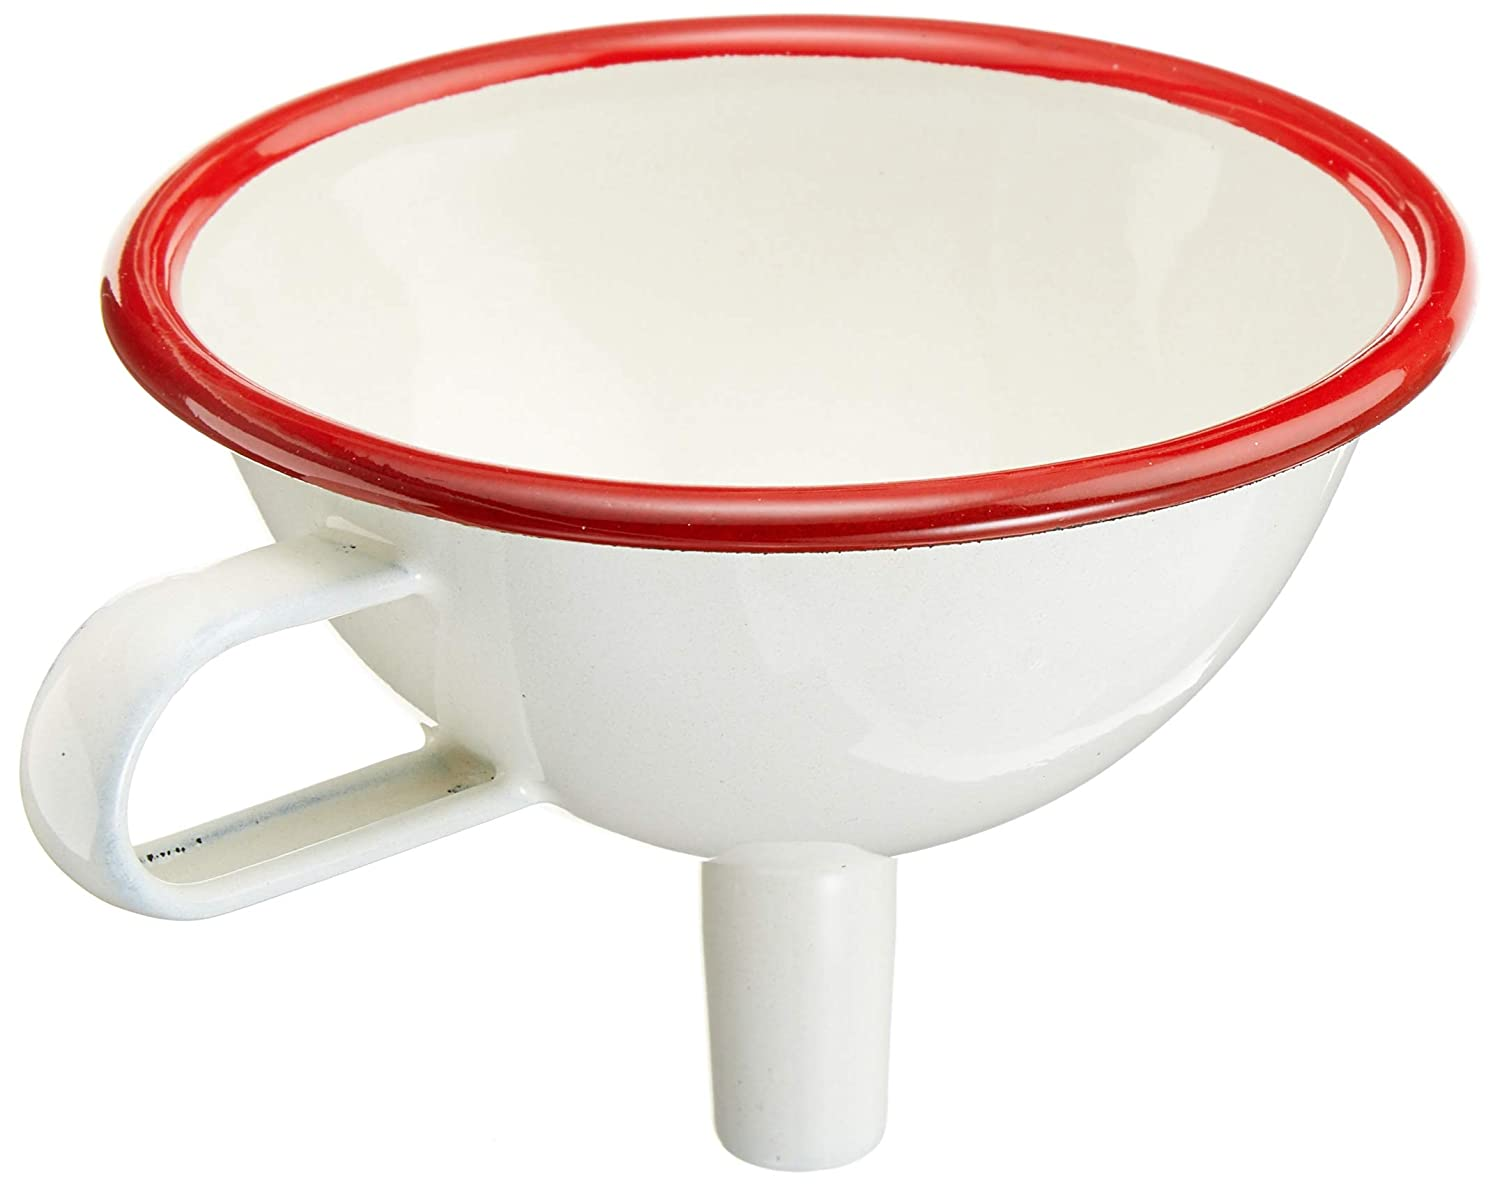 Zenker 682653  Funnel, White and Red Enamel, 13  x 11  x 8  cm 13 x 11 x 8 cm FACBX